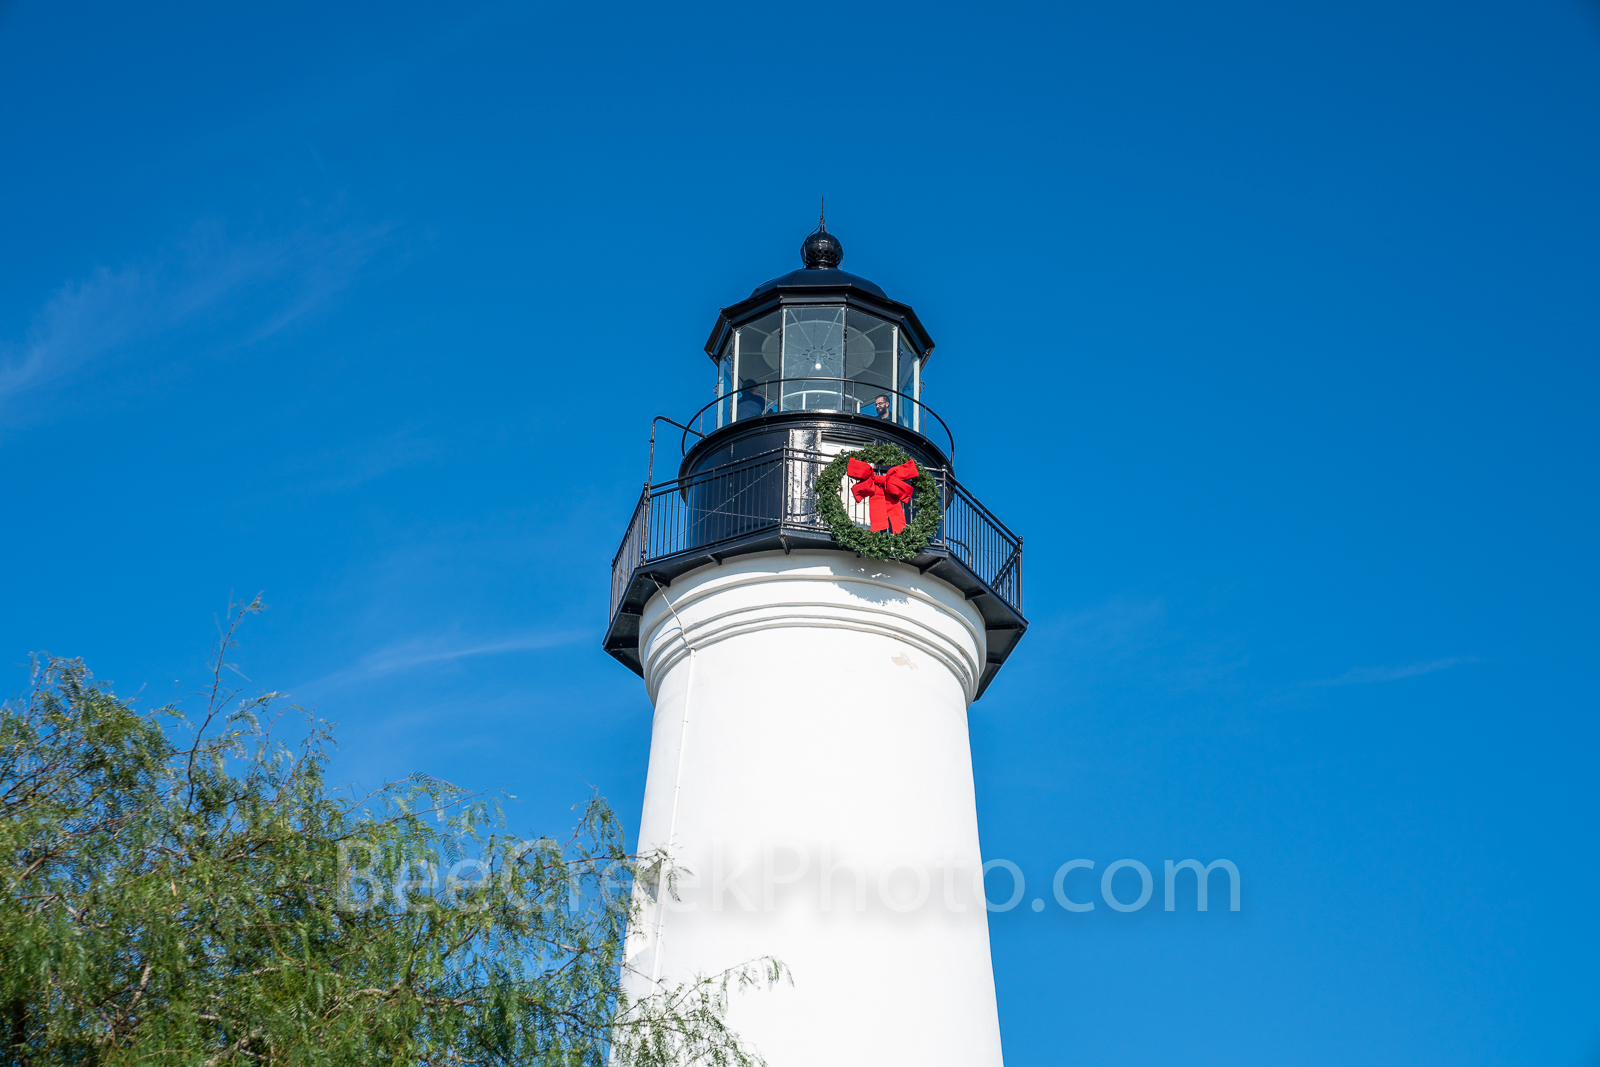 Port Isabella, Light House, holiday, wreath, blue sky, south padre island, barrier island, landmark, historical,, photo